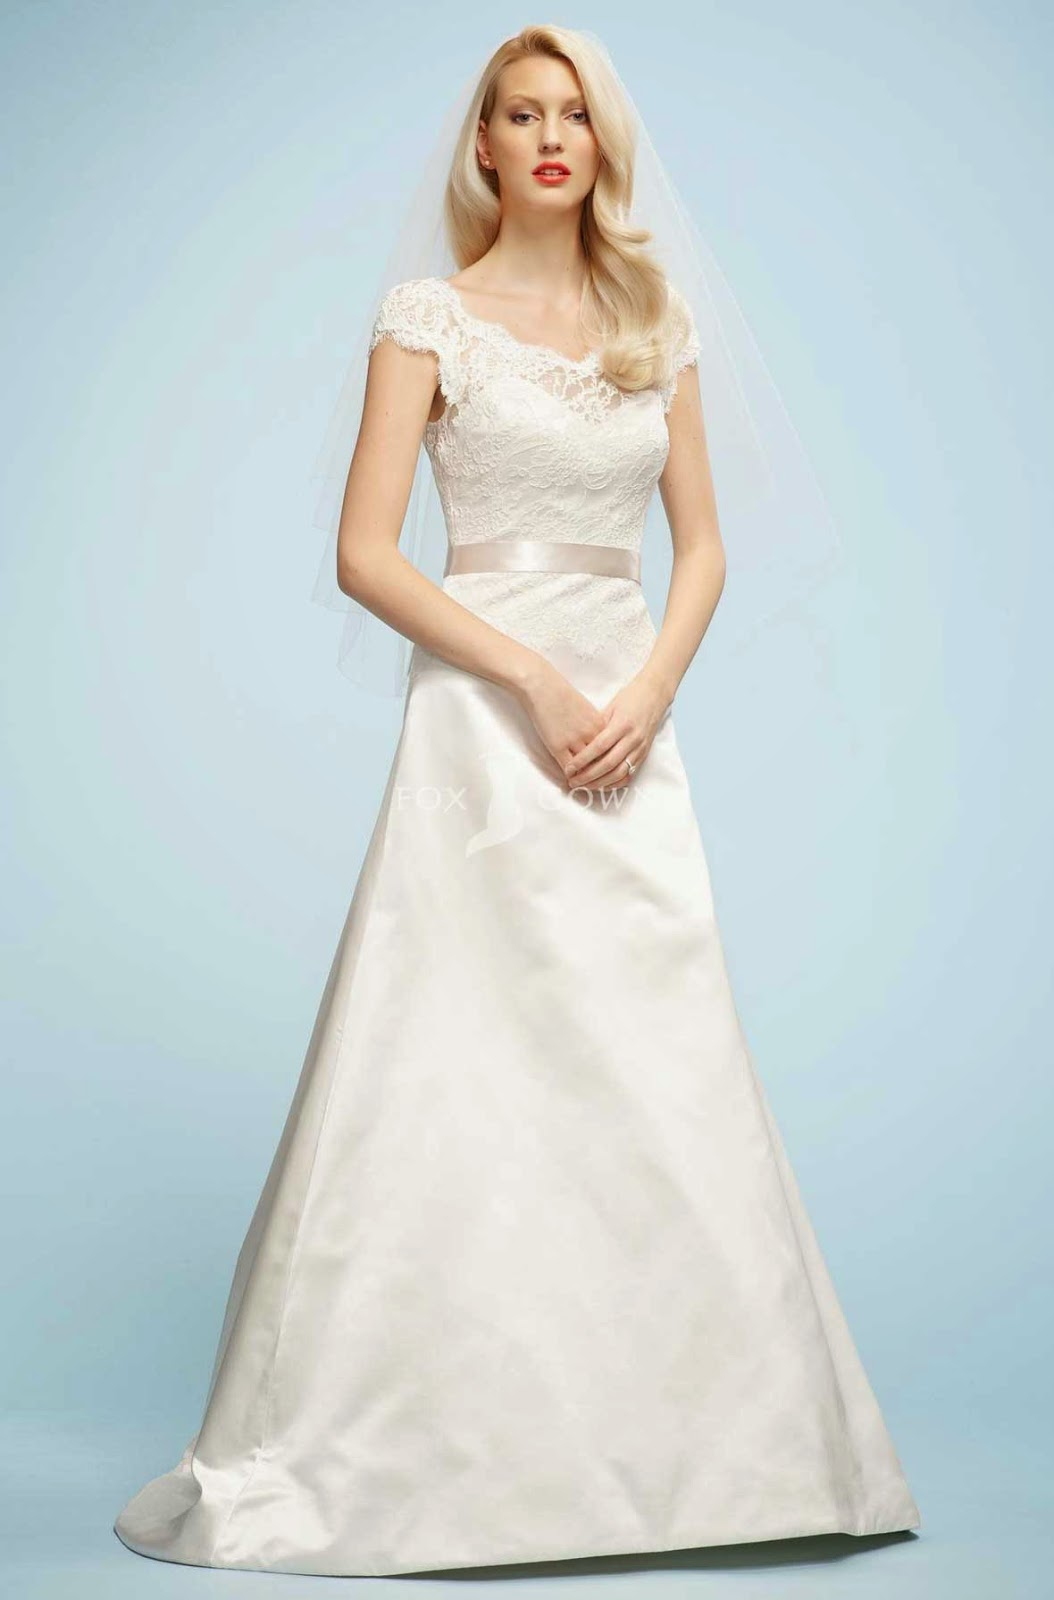 Lace Wedding Dresses Cap Sleeves Concepts Ideas Photos HD